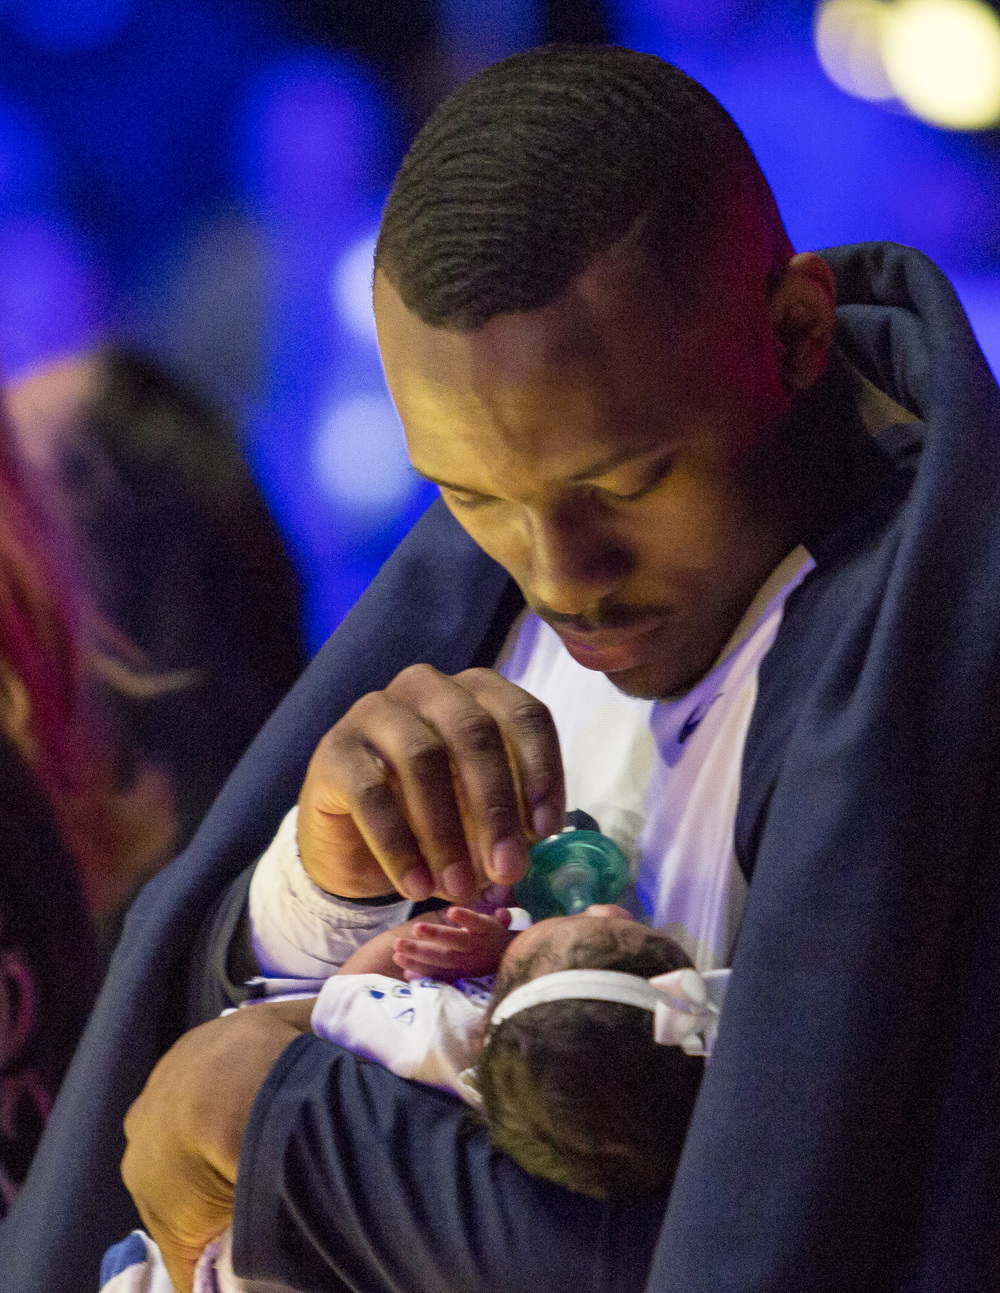 Senior guard Devin Foster holds his newborn daughter on the court of the Bryce Jordan Center during the senior day ceremony before the start of the game against Northwestern on Thursday, March 3, 2016.